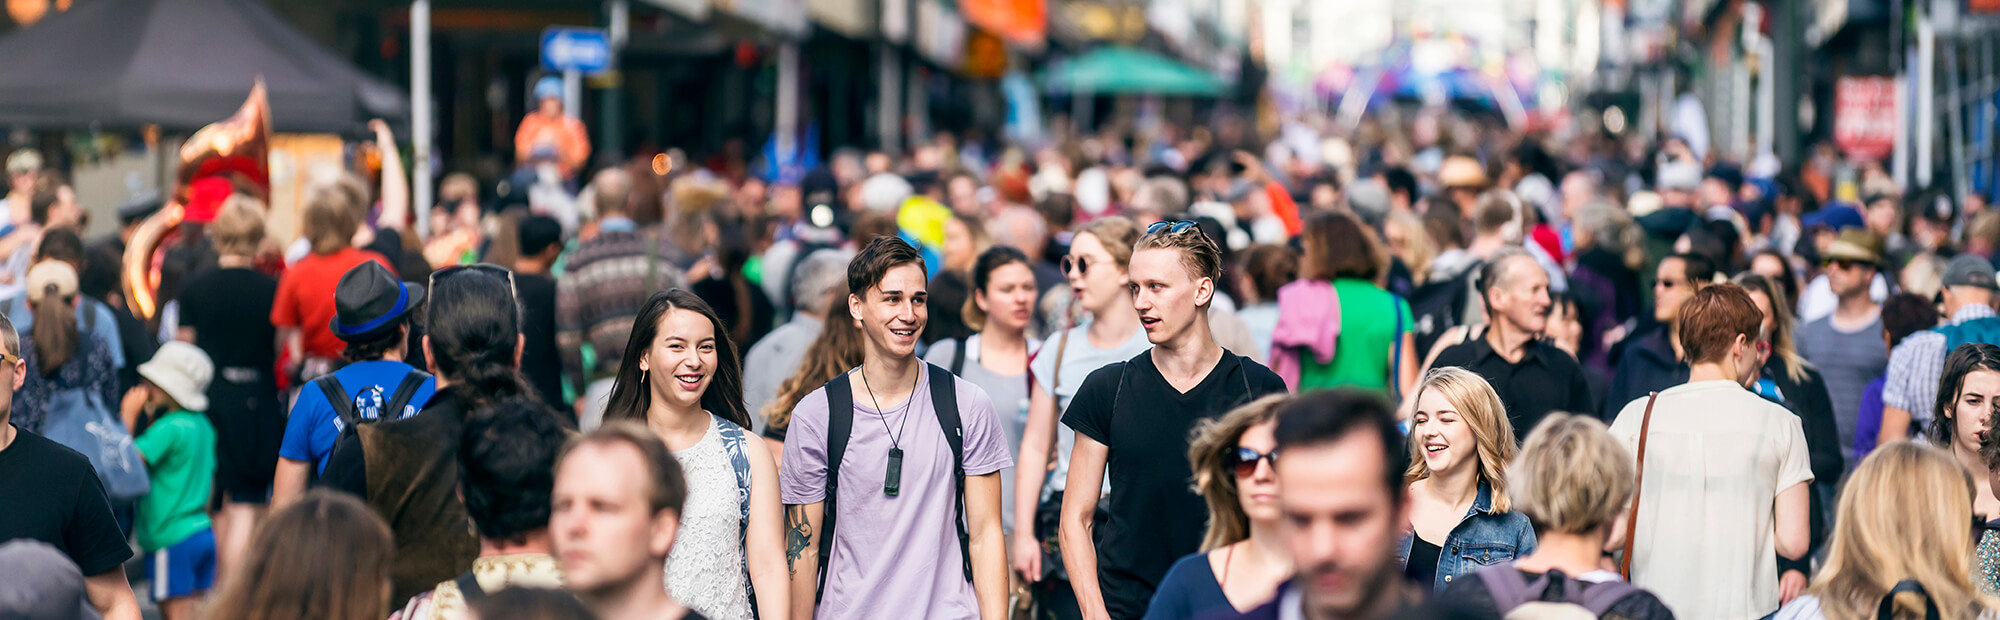 Smiling university students in the crowd at CubaDupa, a street festival in Wellington